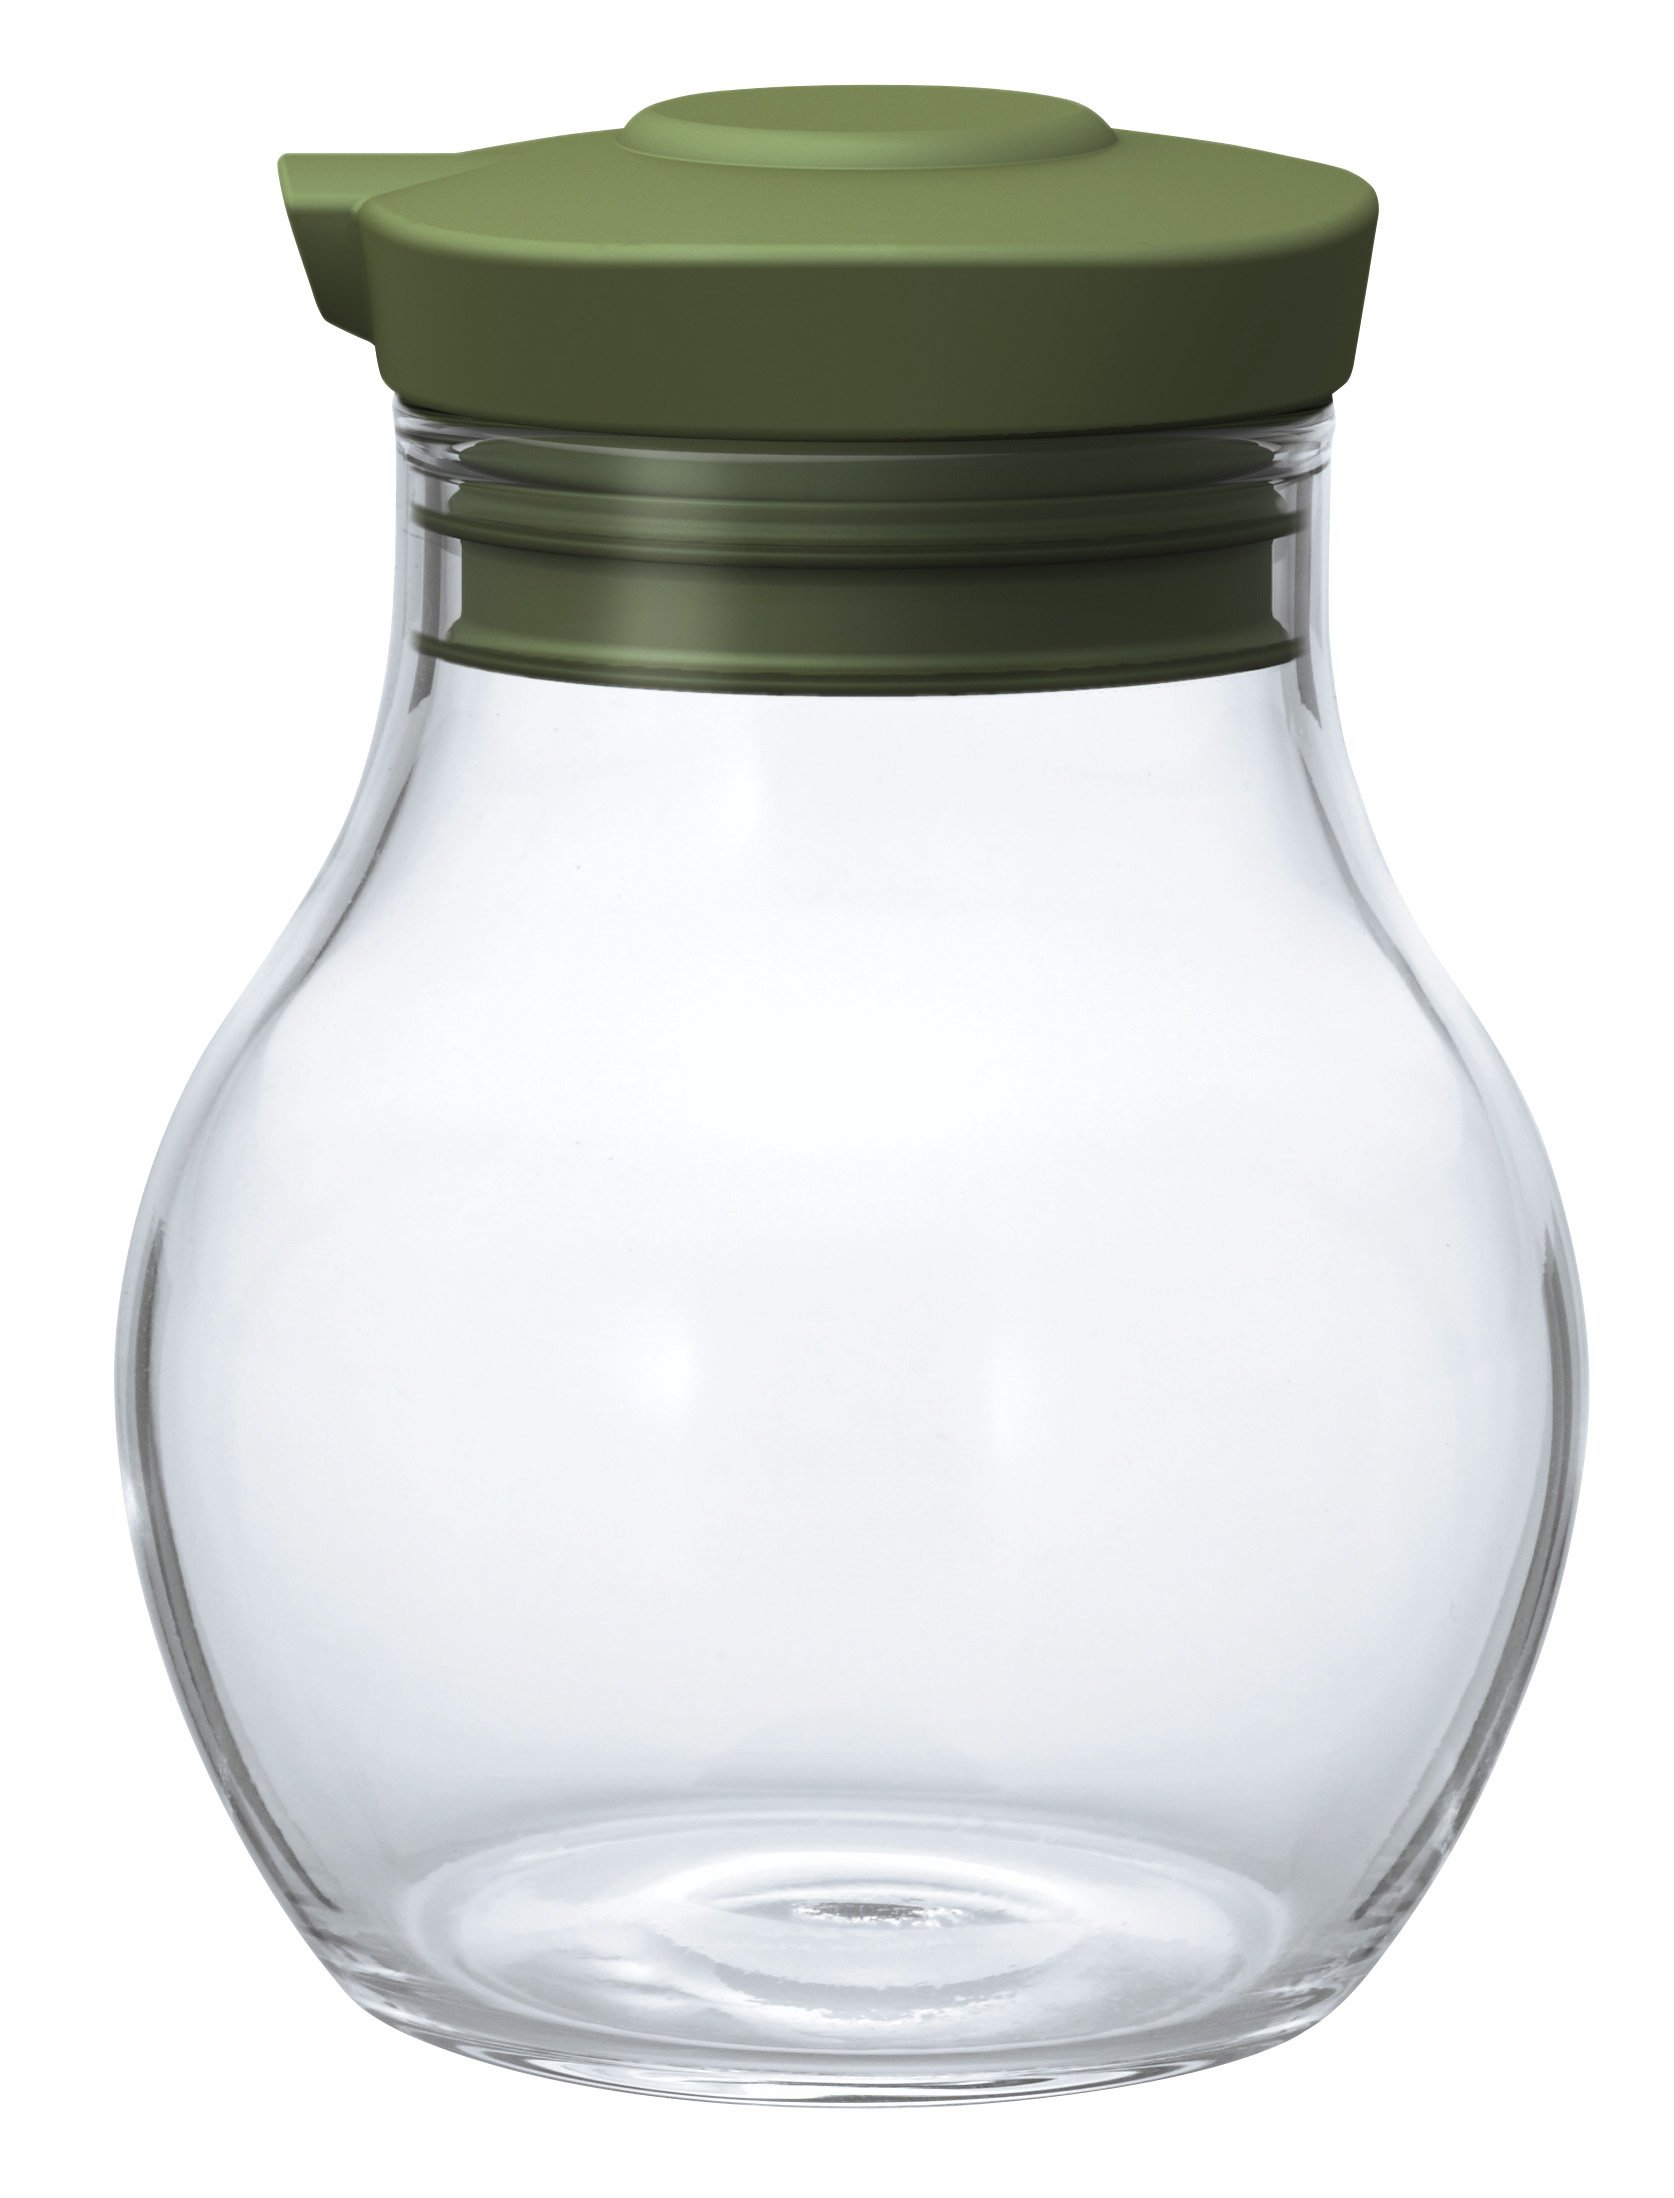 Hario Soy Sauce Bottle, 120ml, Olive Green